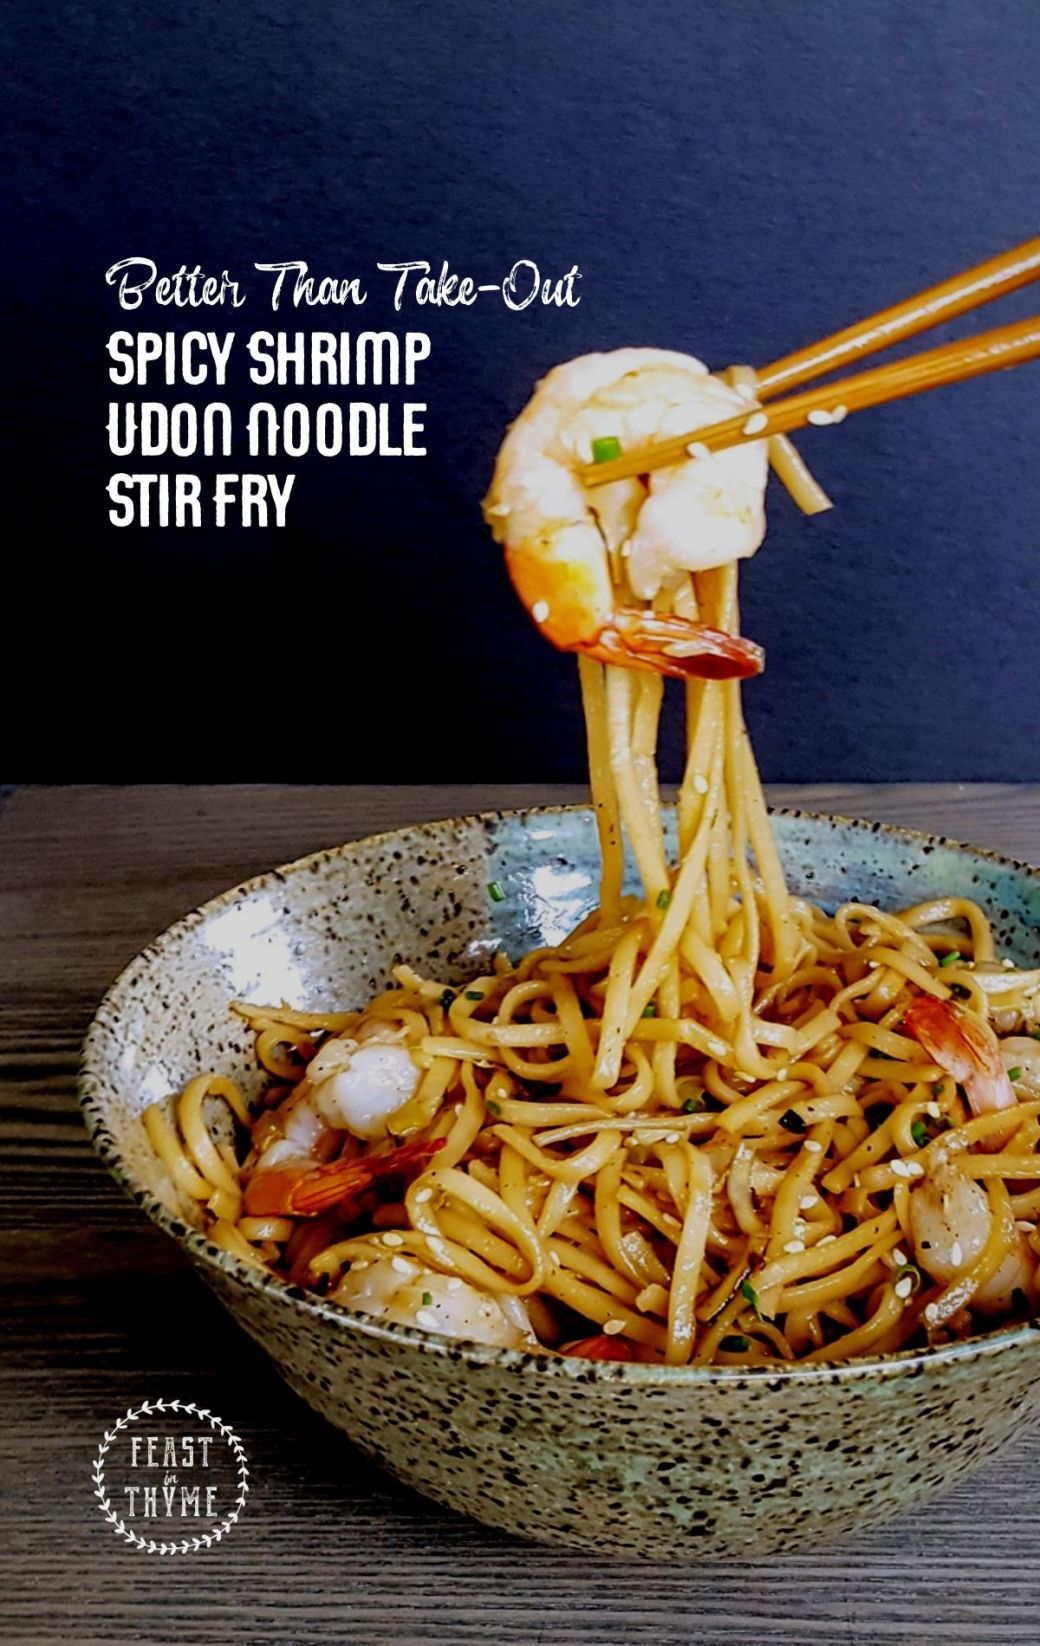 Better Than Take-Out: Spicy Shrimp Udon Noodle Stir Fry